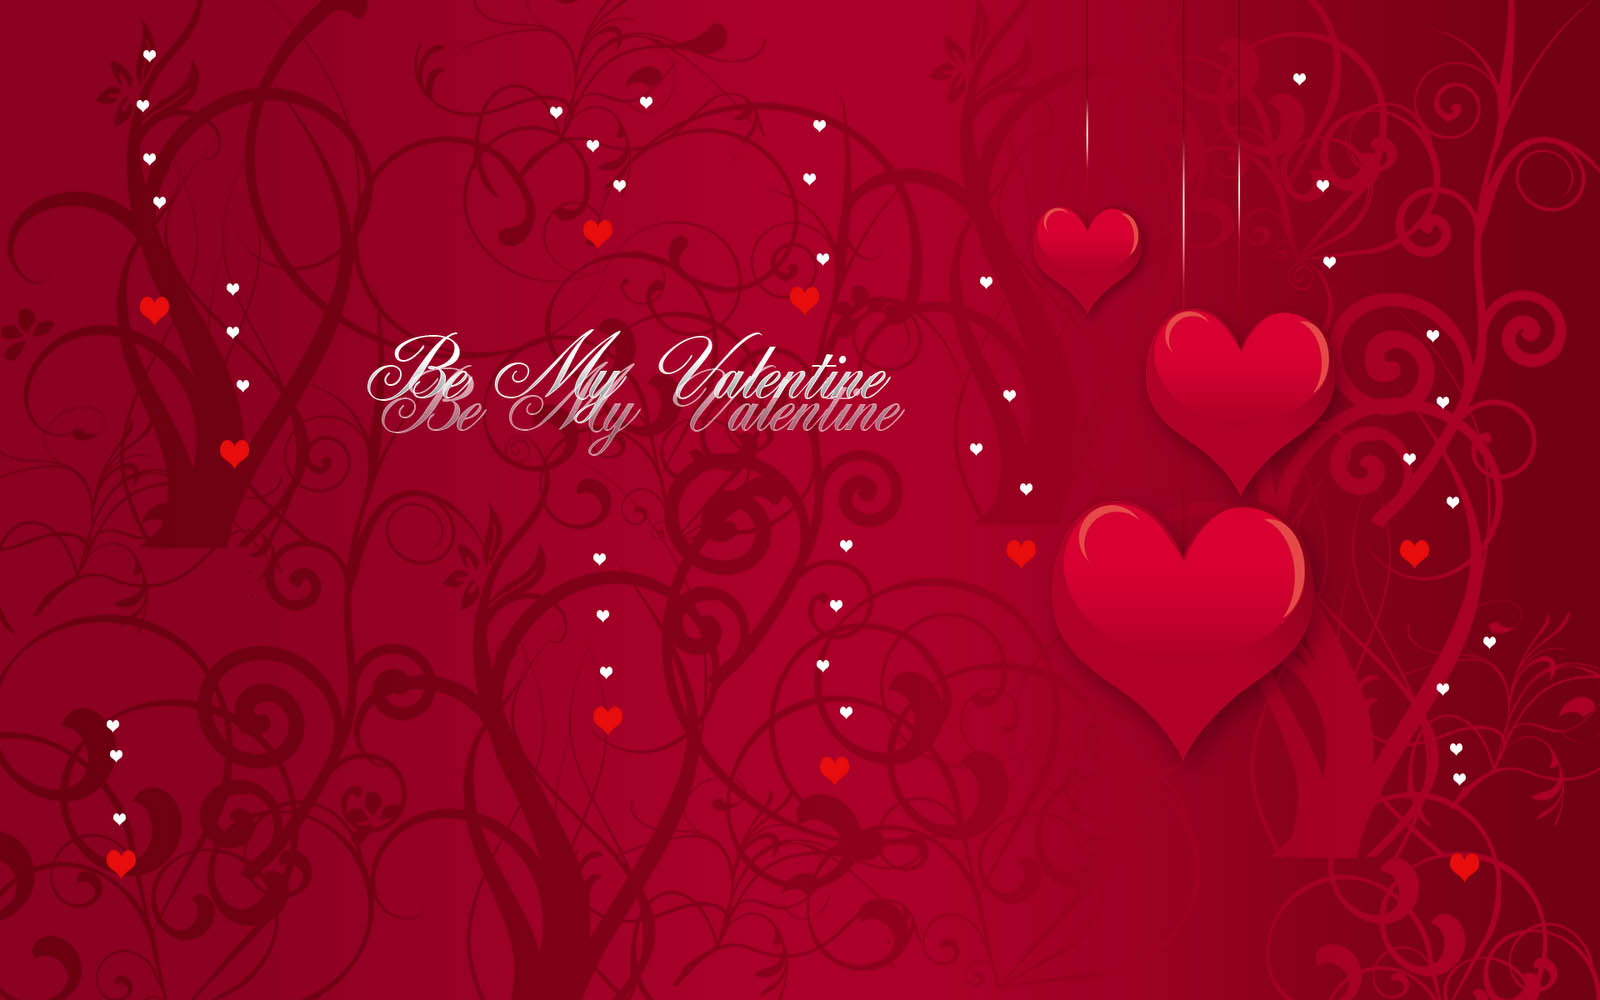 wallpapers valentines day desktop wallpapers. Black Bedroom Furniture Sets. Home Design Ideas